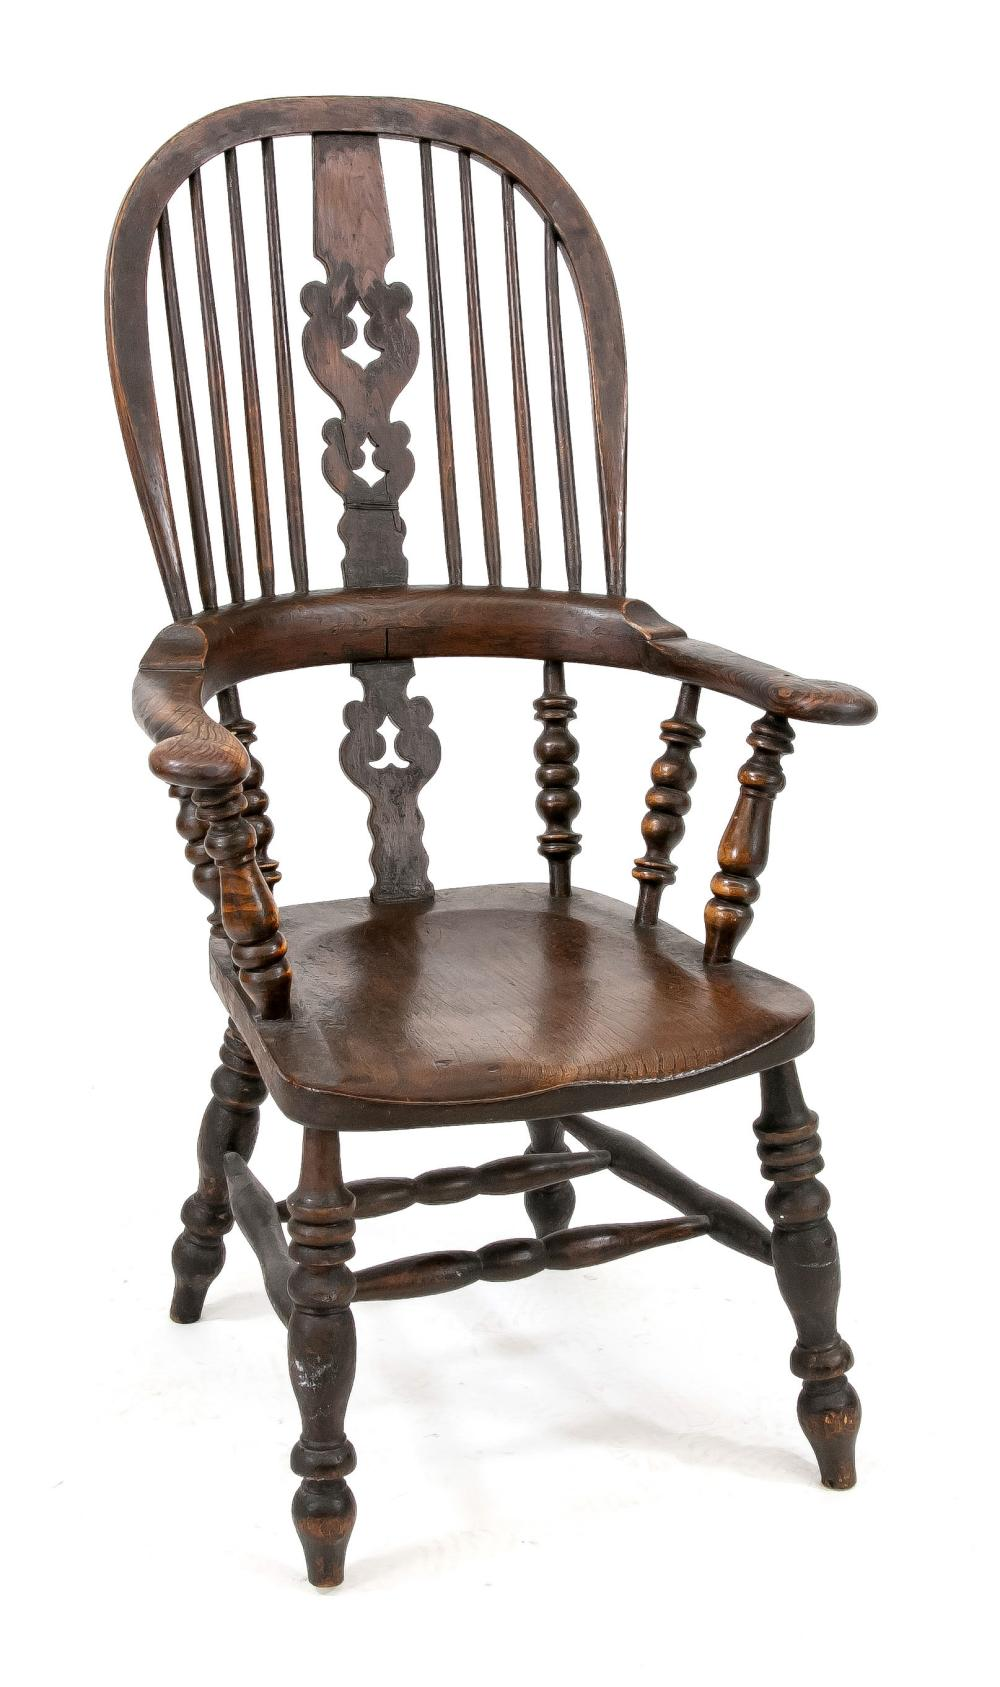 English Windsor chair, end of